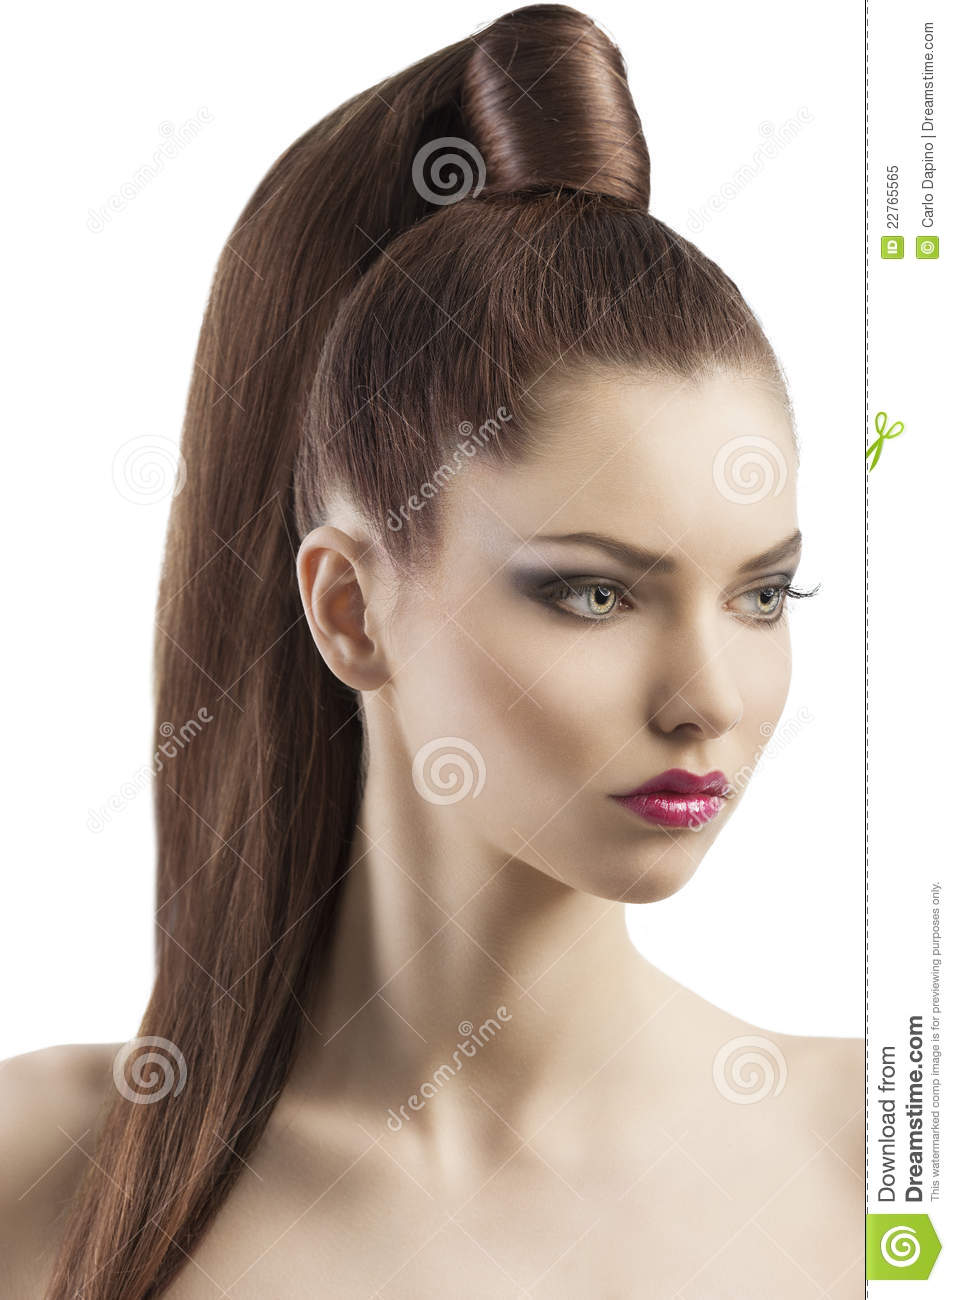 Proud And Young Woman, She Has Searius Stock Image - Image Of Lipstick, Elegance 22765565-3240